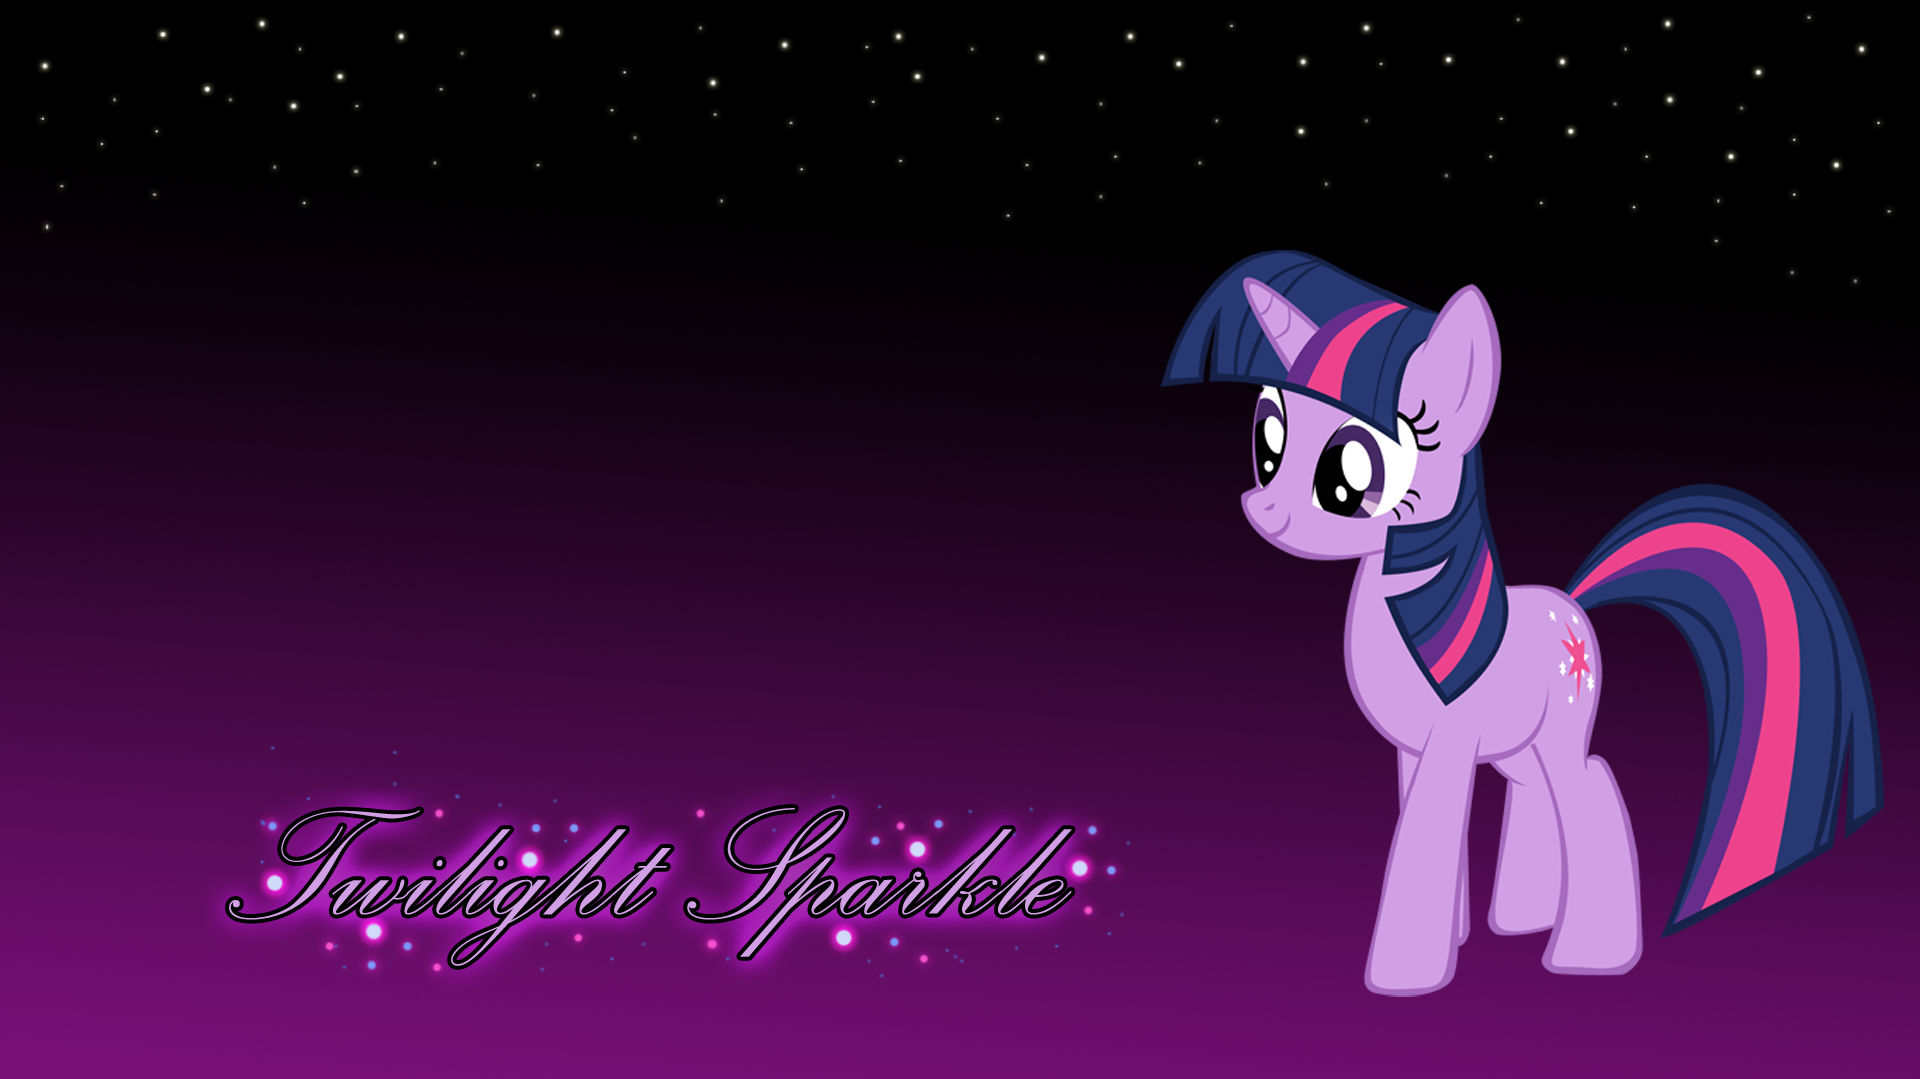 Twilight Sparkle - Wallpaper by Chief117x